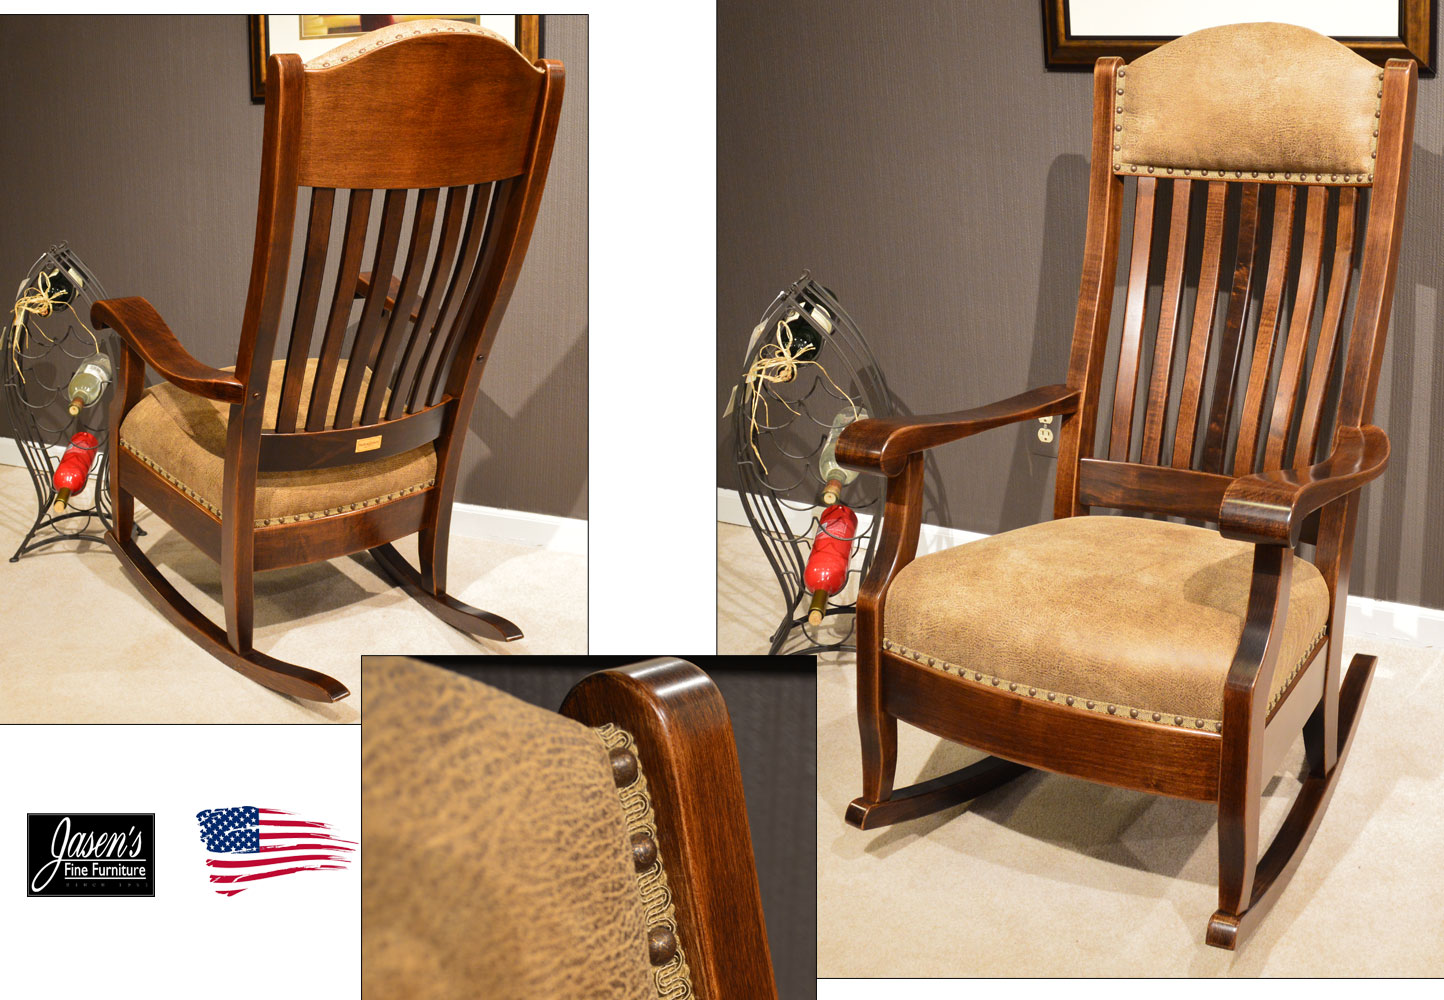 Amish Traditional Rocker Jasen S Fine Furniture Since 1951